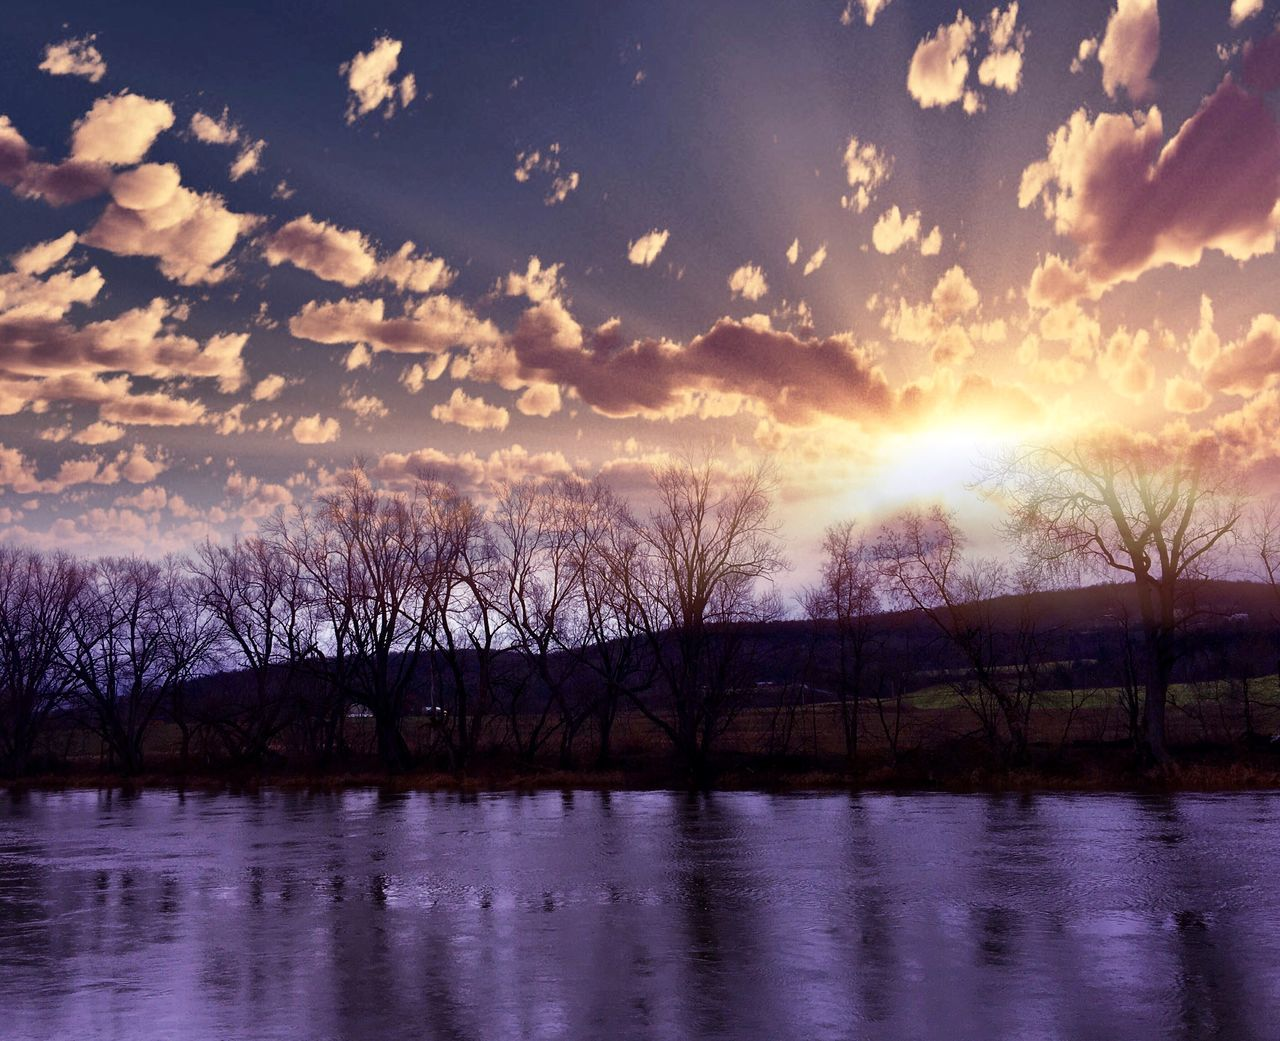 Nature Water Beauty In Nature Sunset Reflection Sky Lake Scenics Bare Tree Tranquility Outdoors Waterfront Tree Tranquil Scene Astronomy